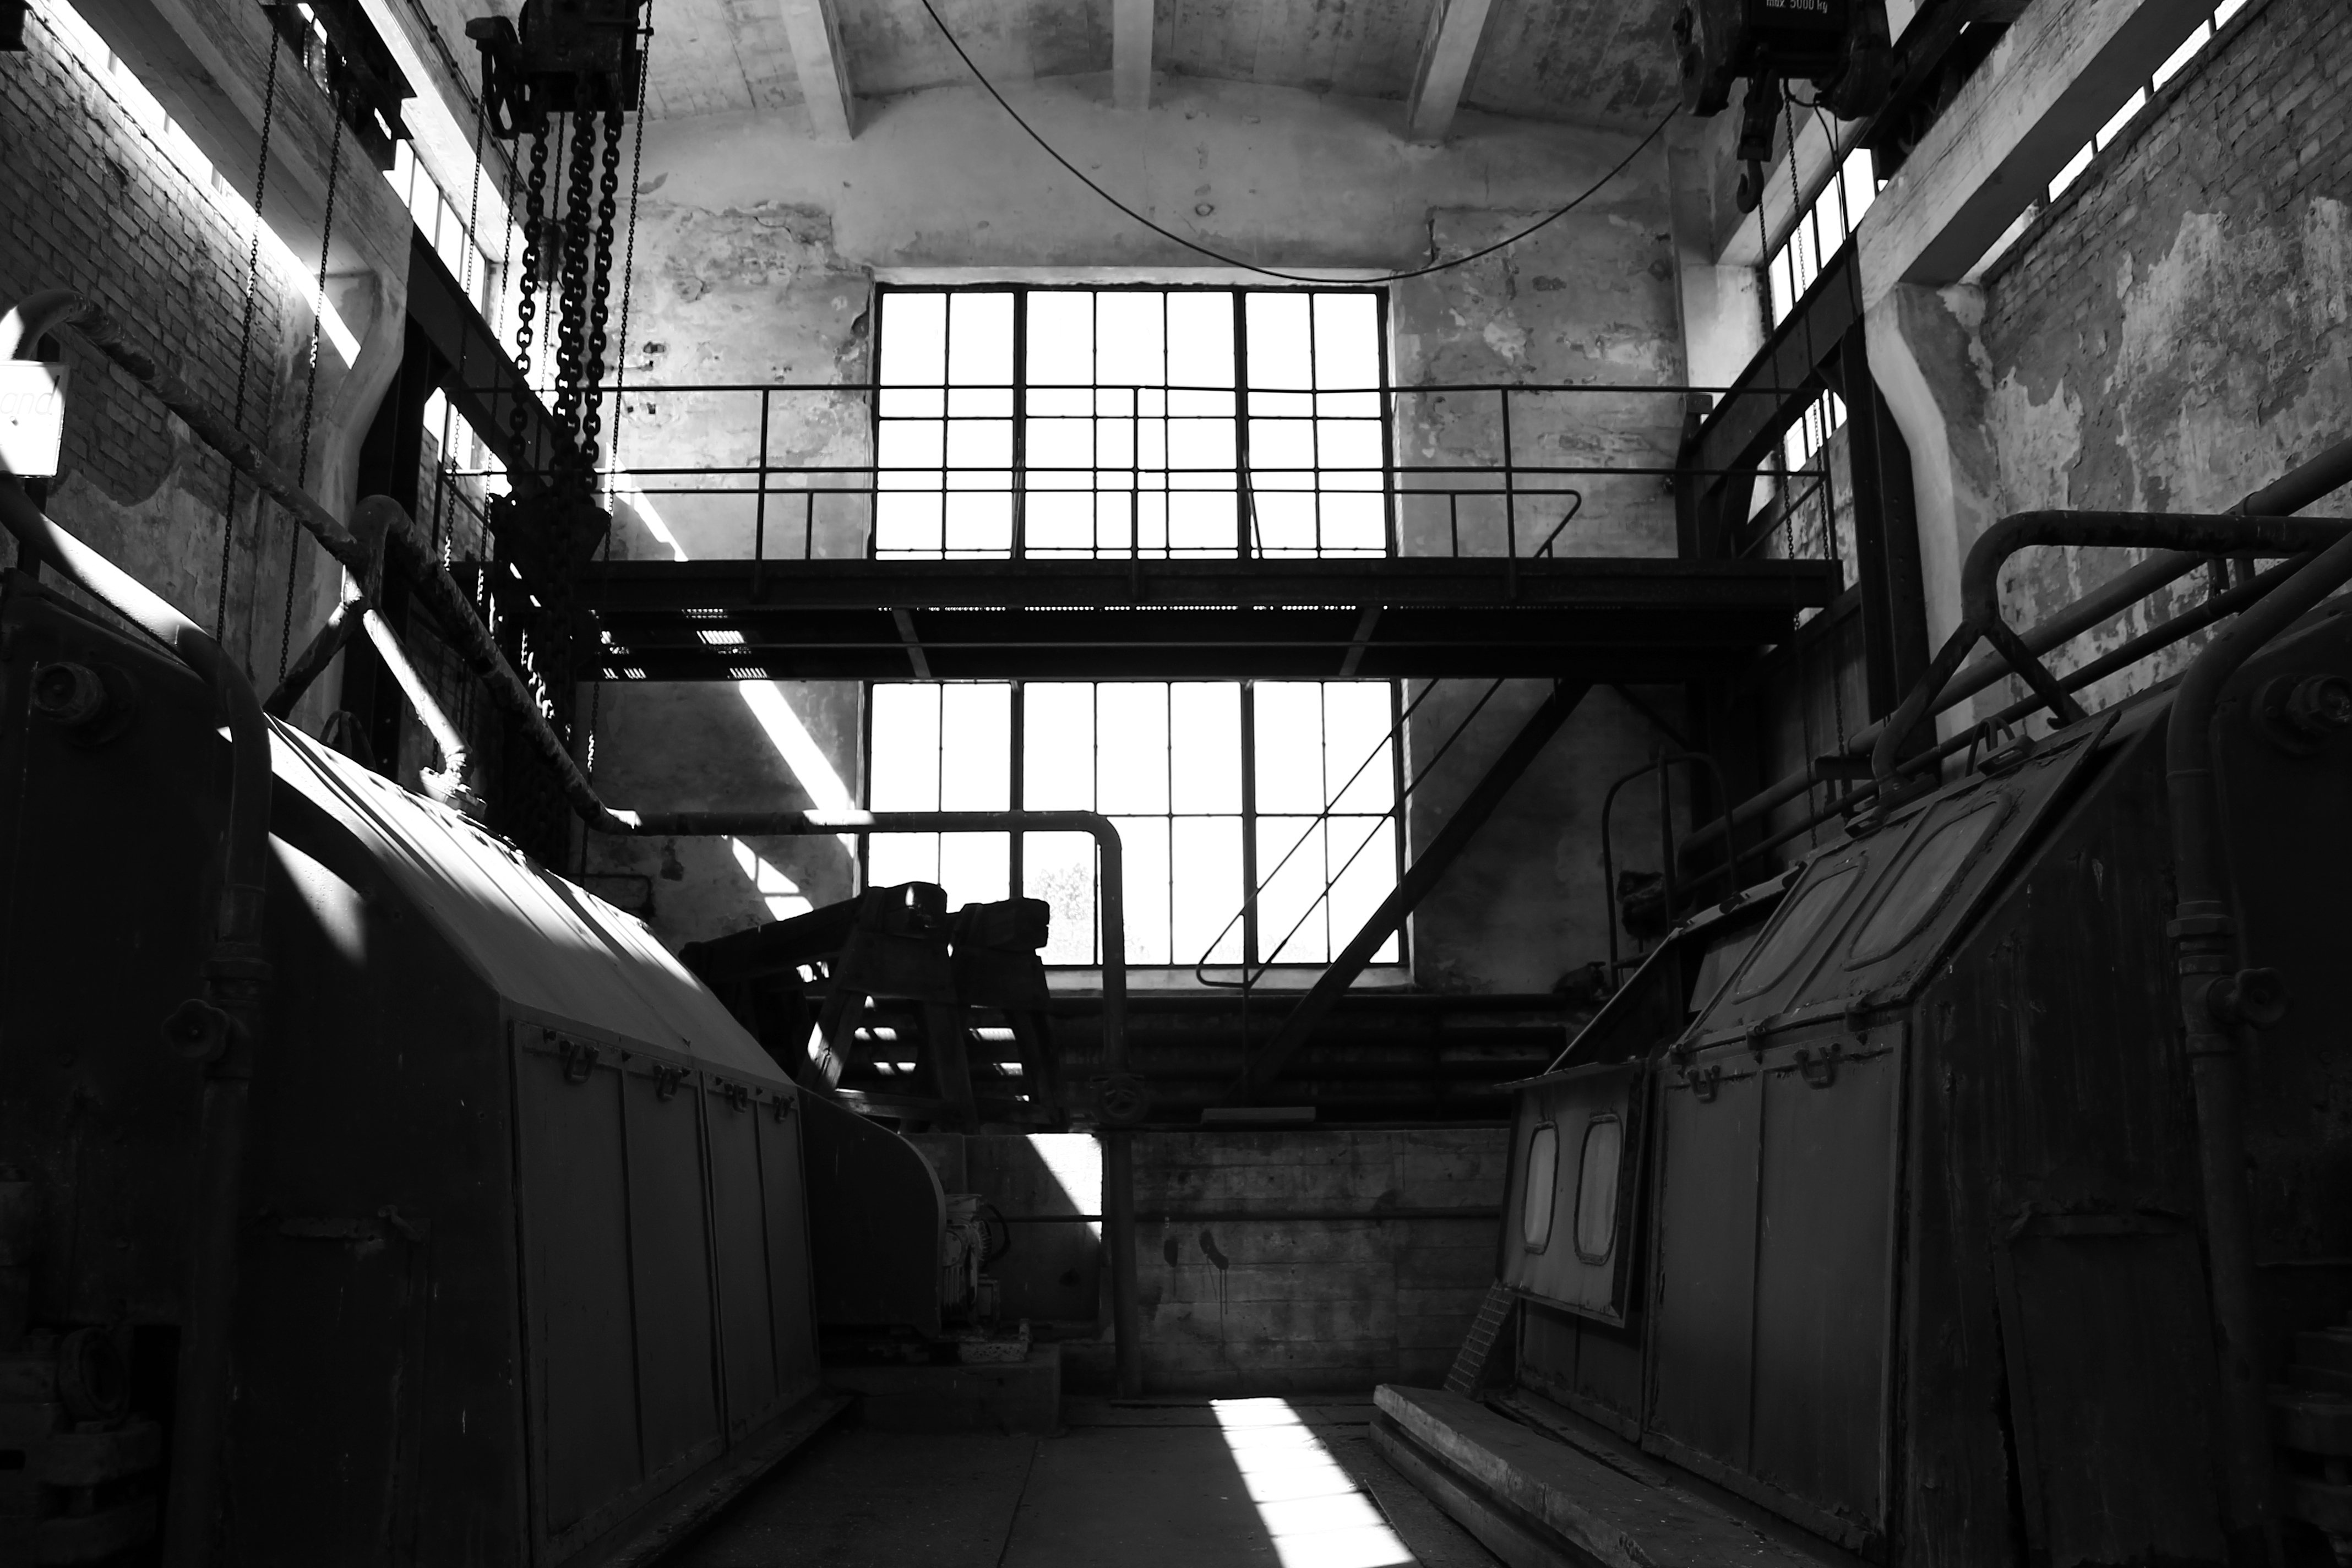 Cold Photography Black White Machines Abandoned Urbex